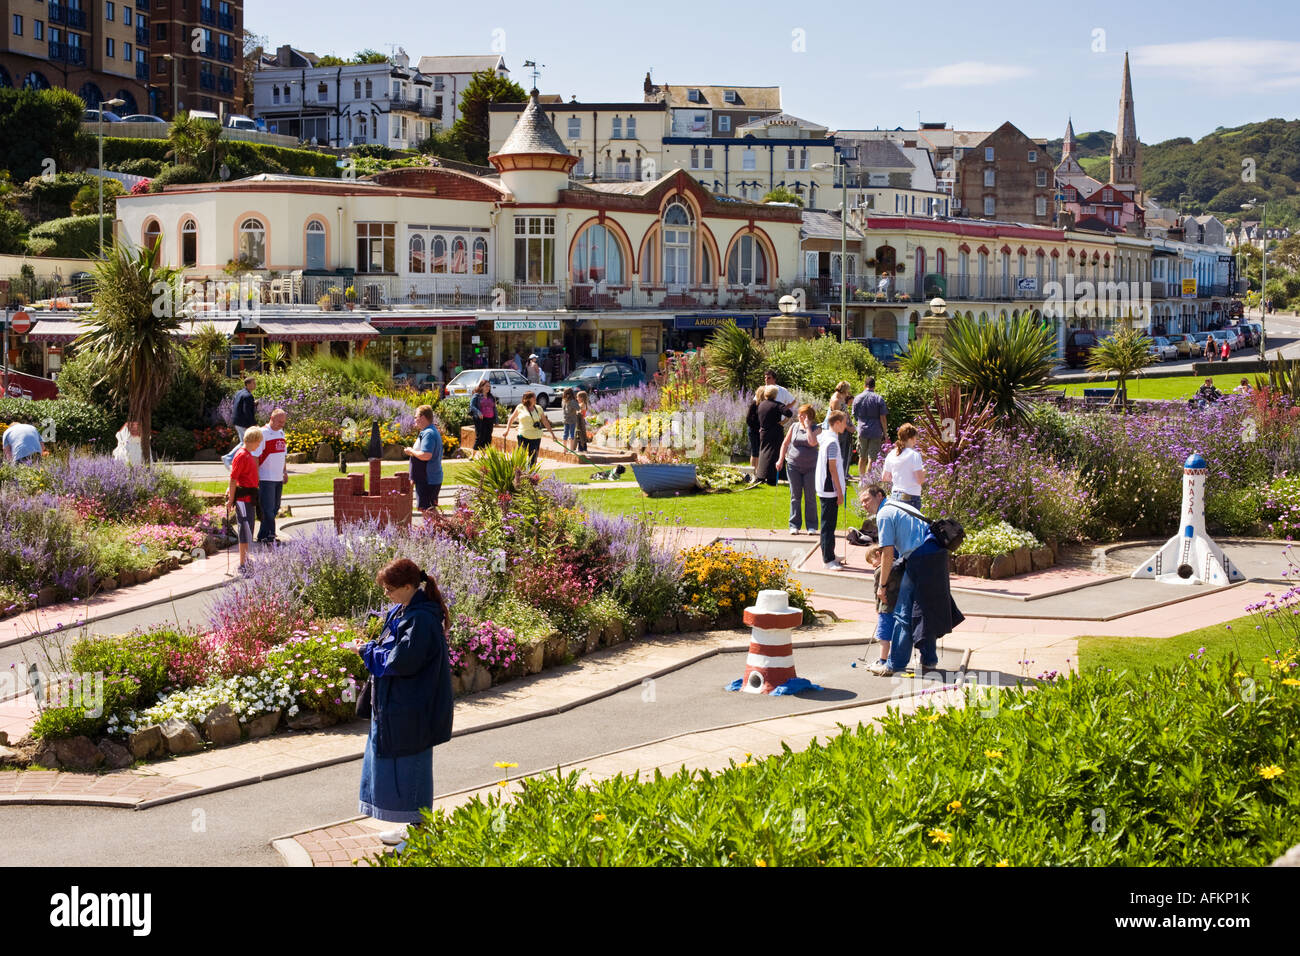 Tourists and holidaymakers playing Crazy Golf or Mini Golf at the seaside town on the promenade at Ilfracombe, Devon, - Stock Image